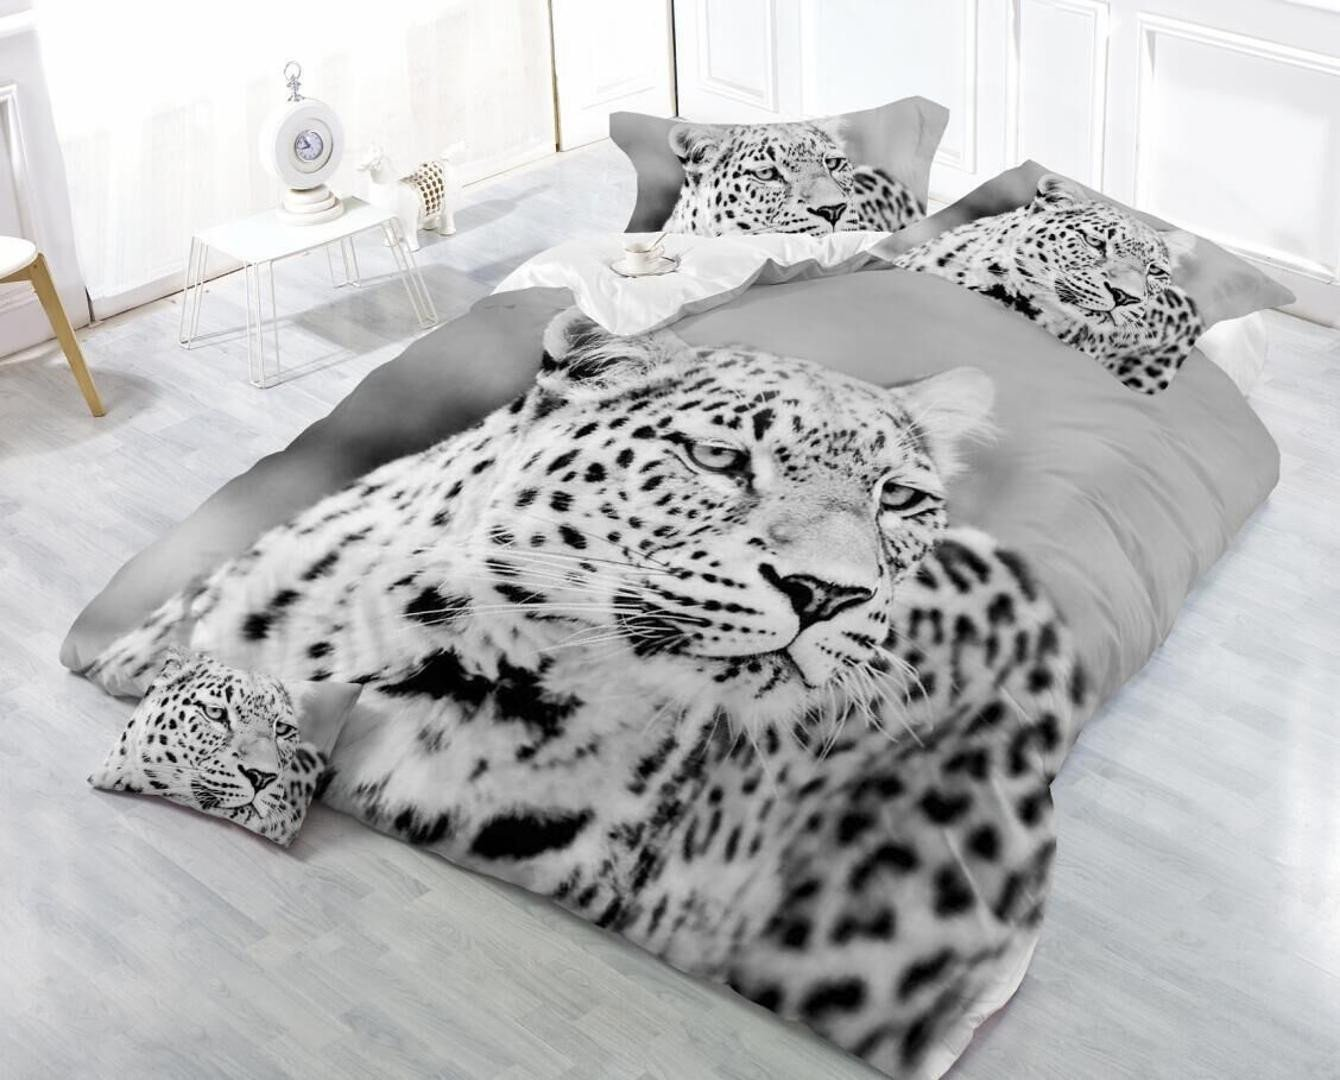 King Bedroom Comforter Set Luxury 3d Leopard Cat Grain Bedding Set forter Duvet Cover Bed Sheet Pillowcases King Size Bed Linen Home Decor Christmas Bedding King forter Blue